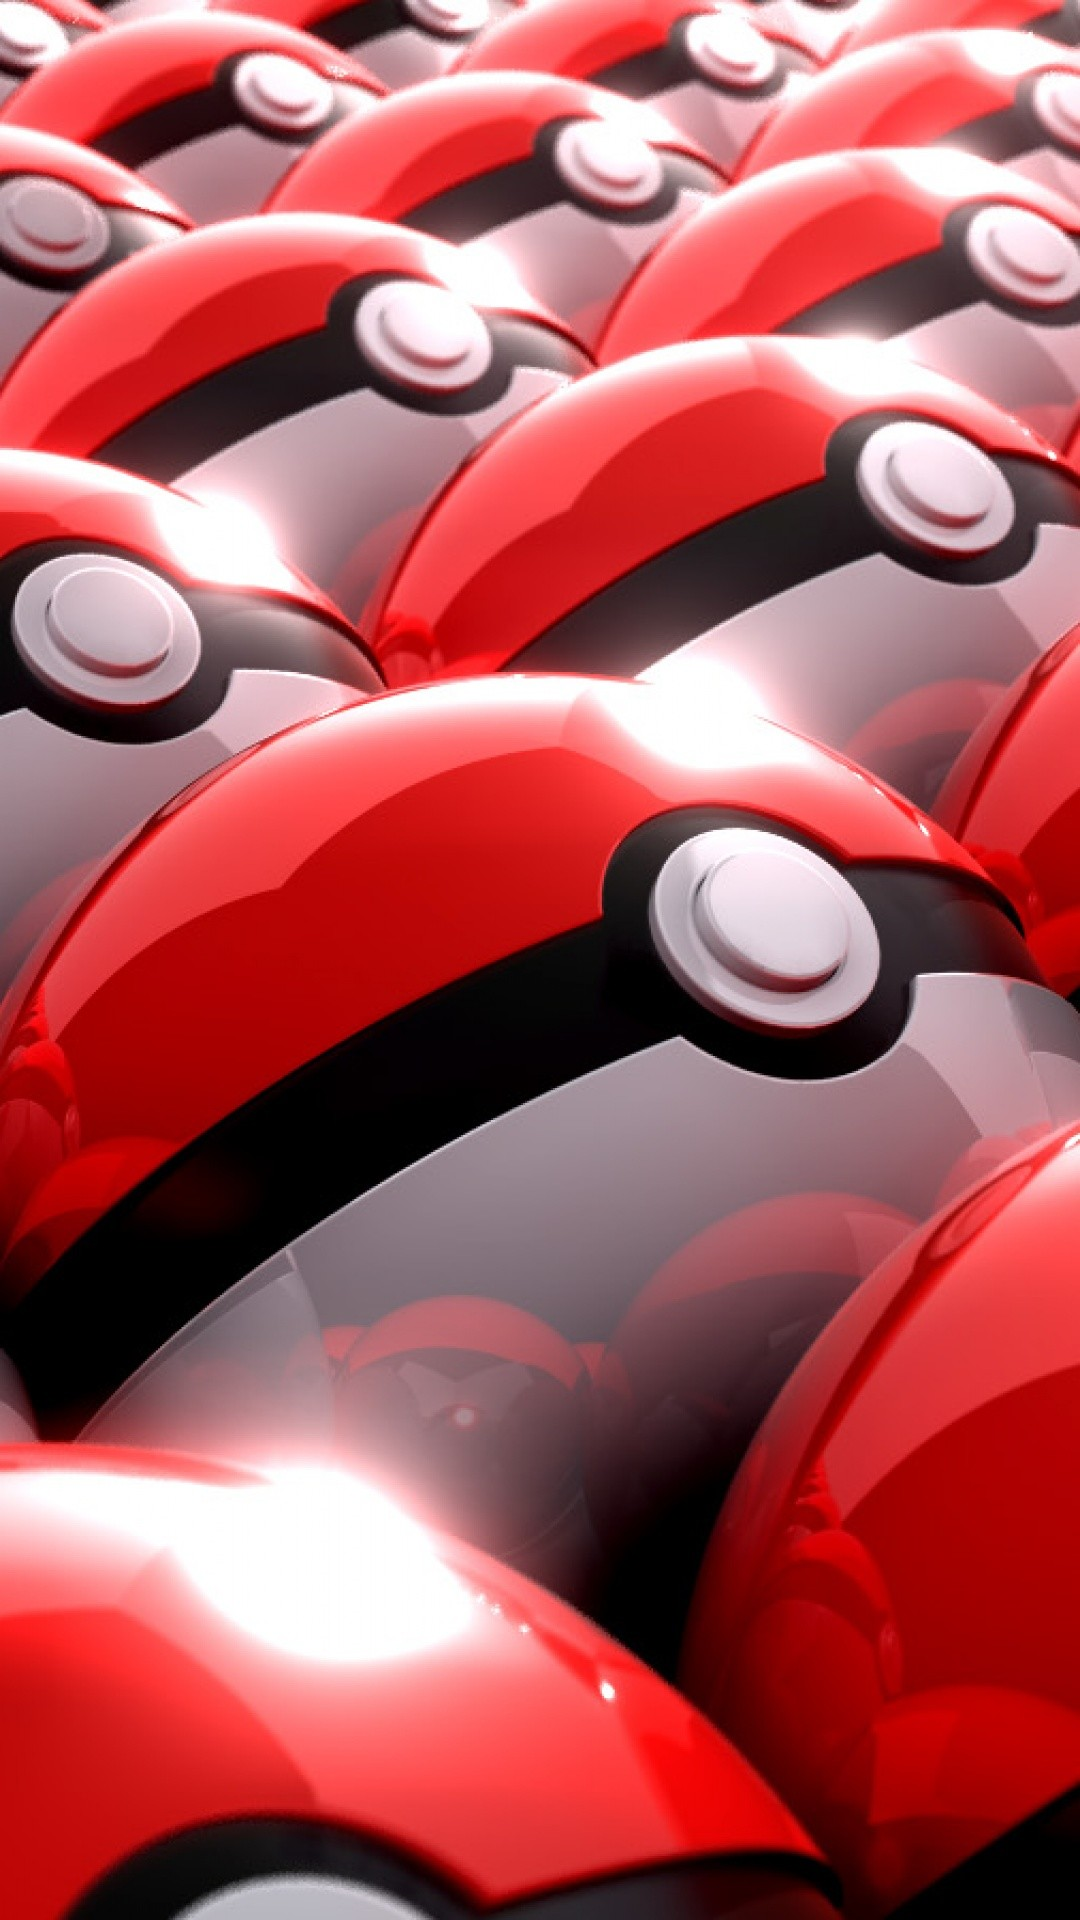 hd pokeball wallpapers 77 images